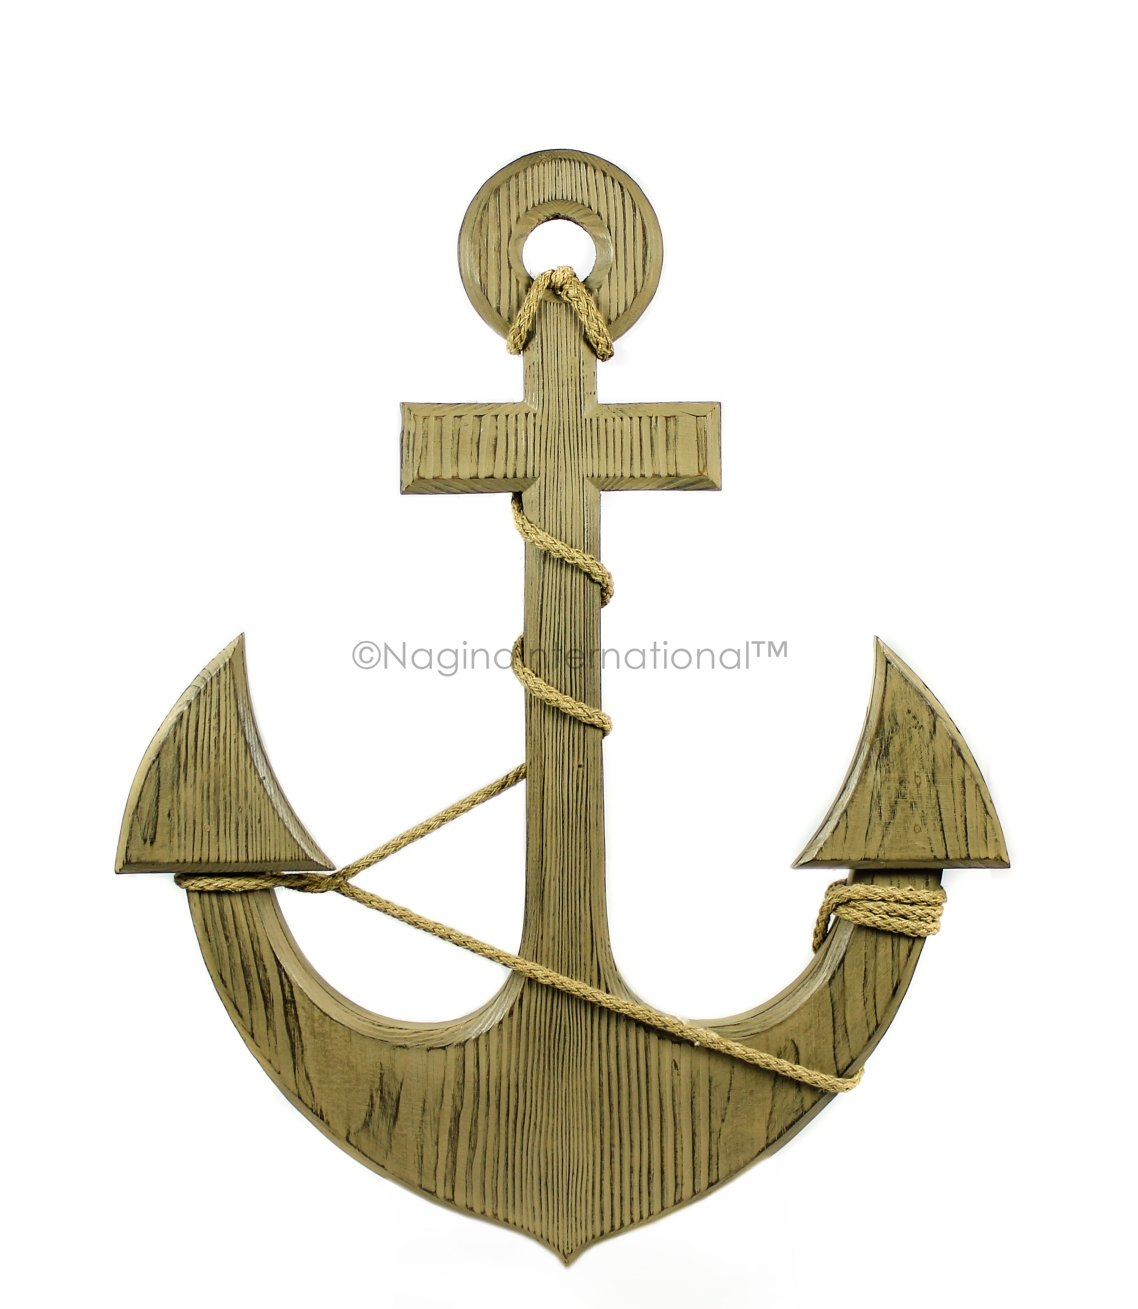 Nagina International 24'' Light Brown Nautical Wall Mounted Handcrafted Premium Antique Pine Wood Anchor With Accentuated Rope | Pirate's Ship Decor